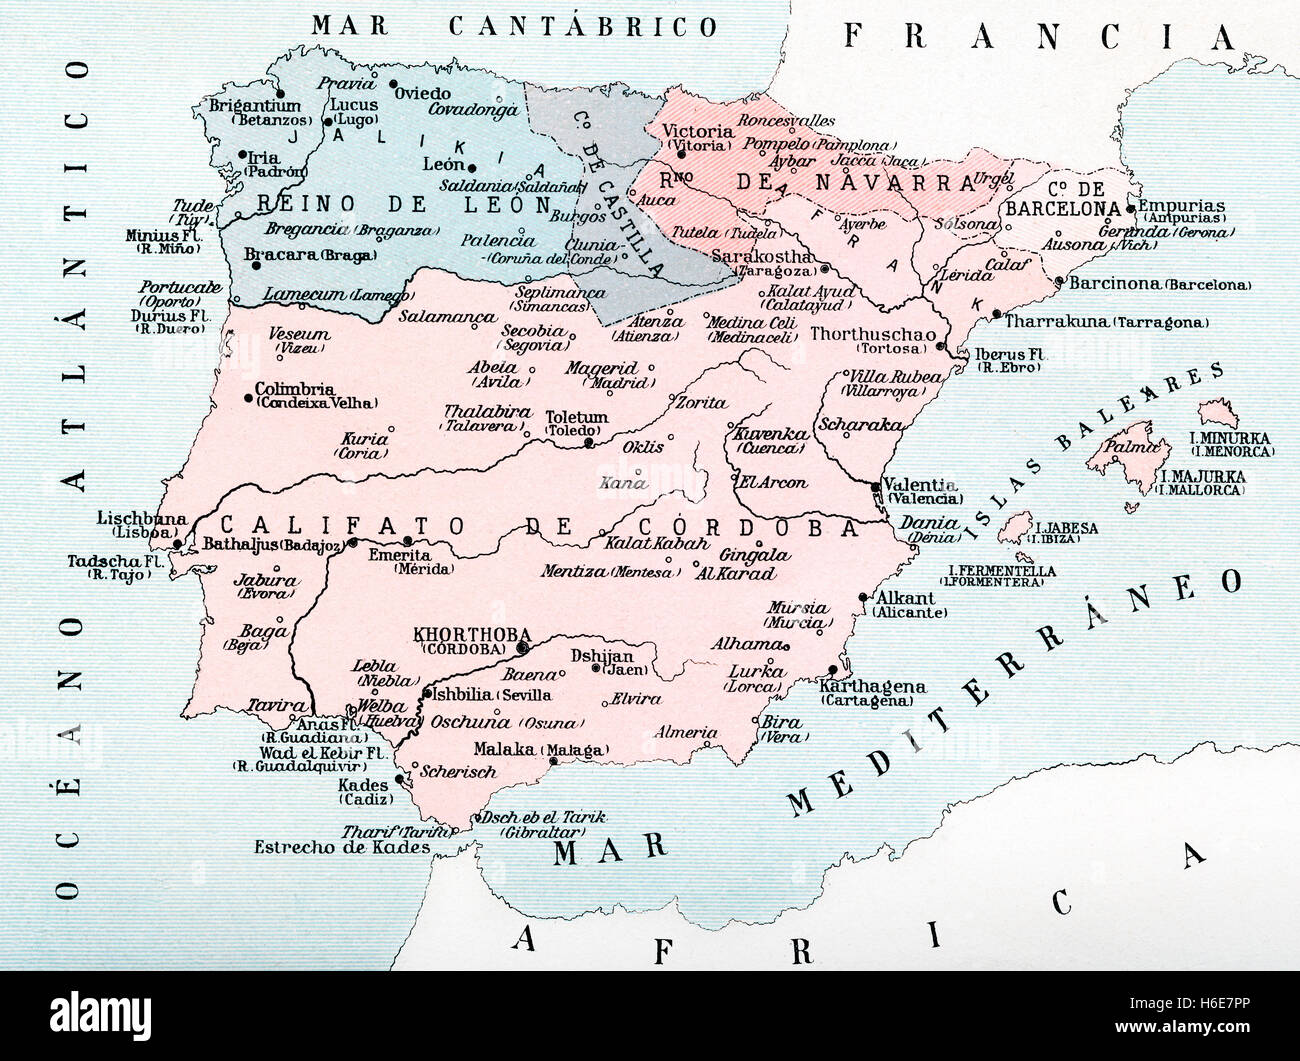 Map of Spain in the middle ages during the Muslim occupation. - Stock Image